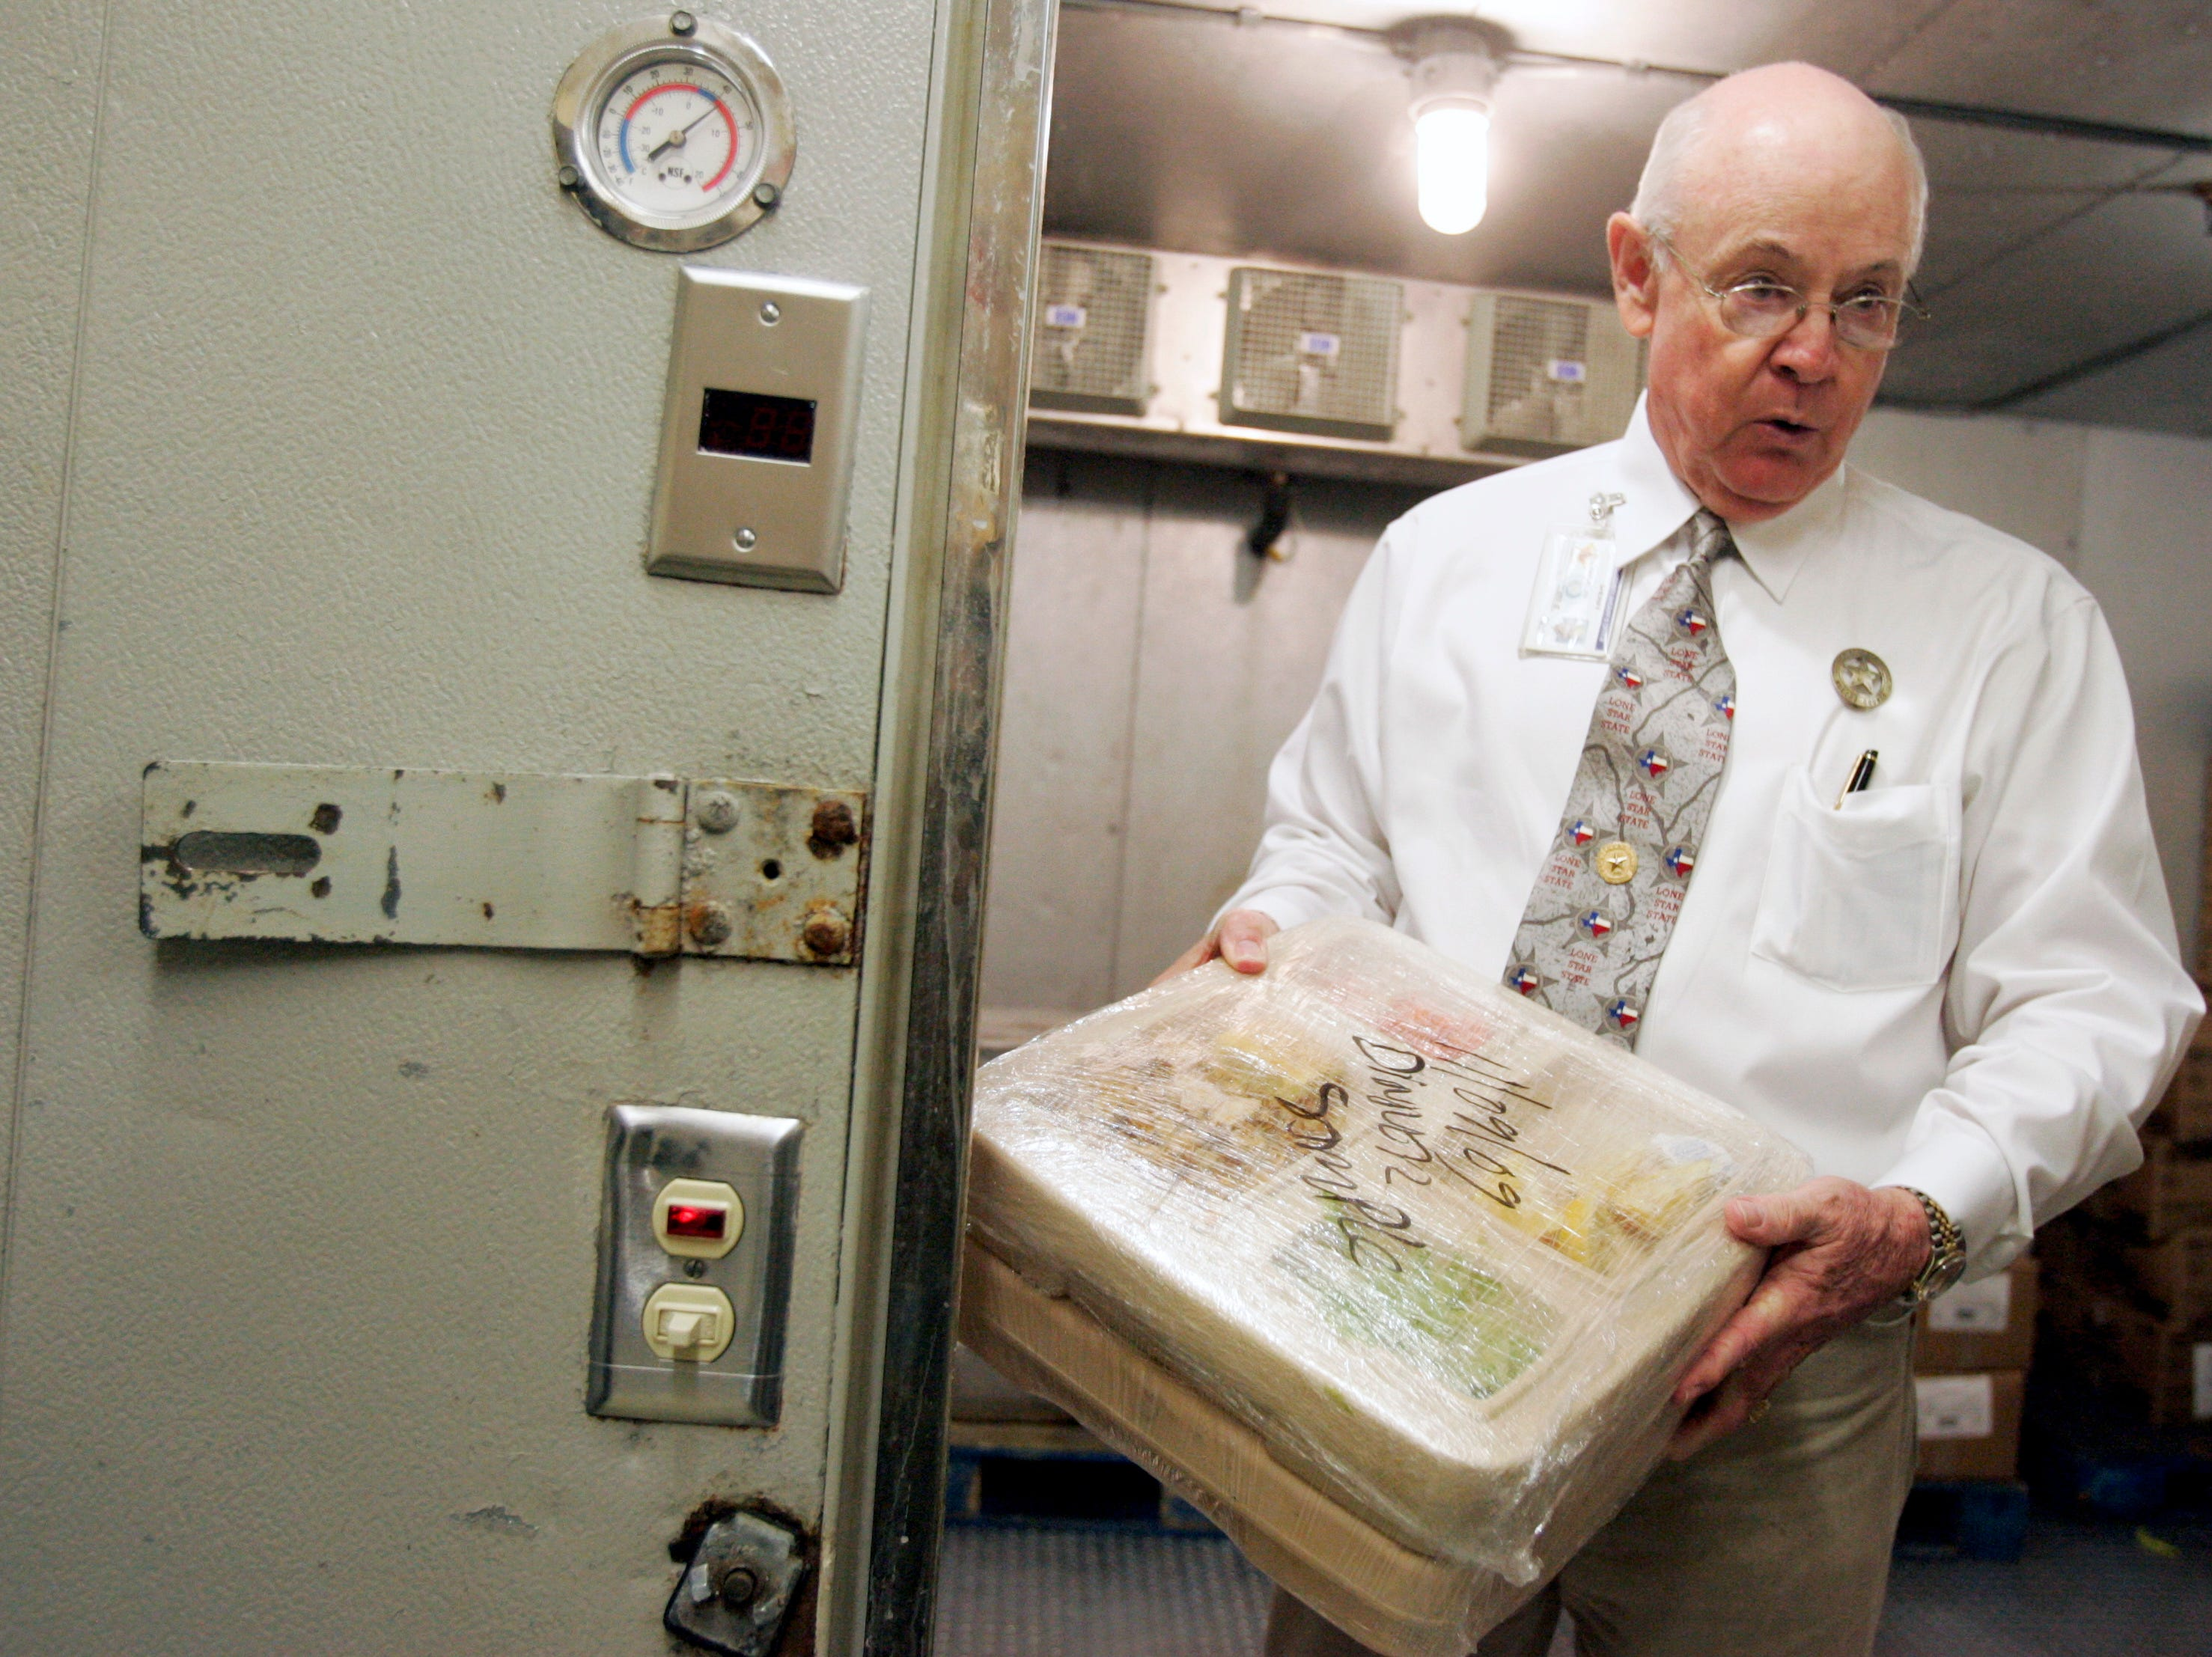 Sheriff Jim Kaelin holds up one of the meals they fed to prisoners, which they label and save for testing in case their is a food illness, Thursday, Nov. 12, 2009 at the Nueces County Jail in Corpus Christi.